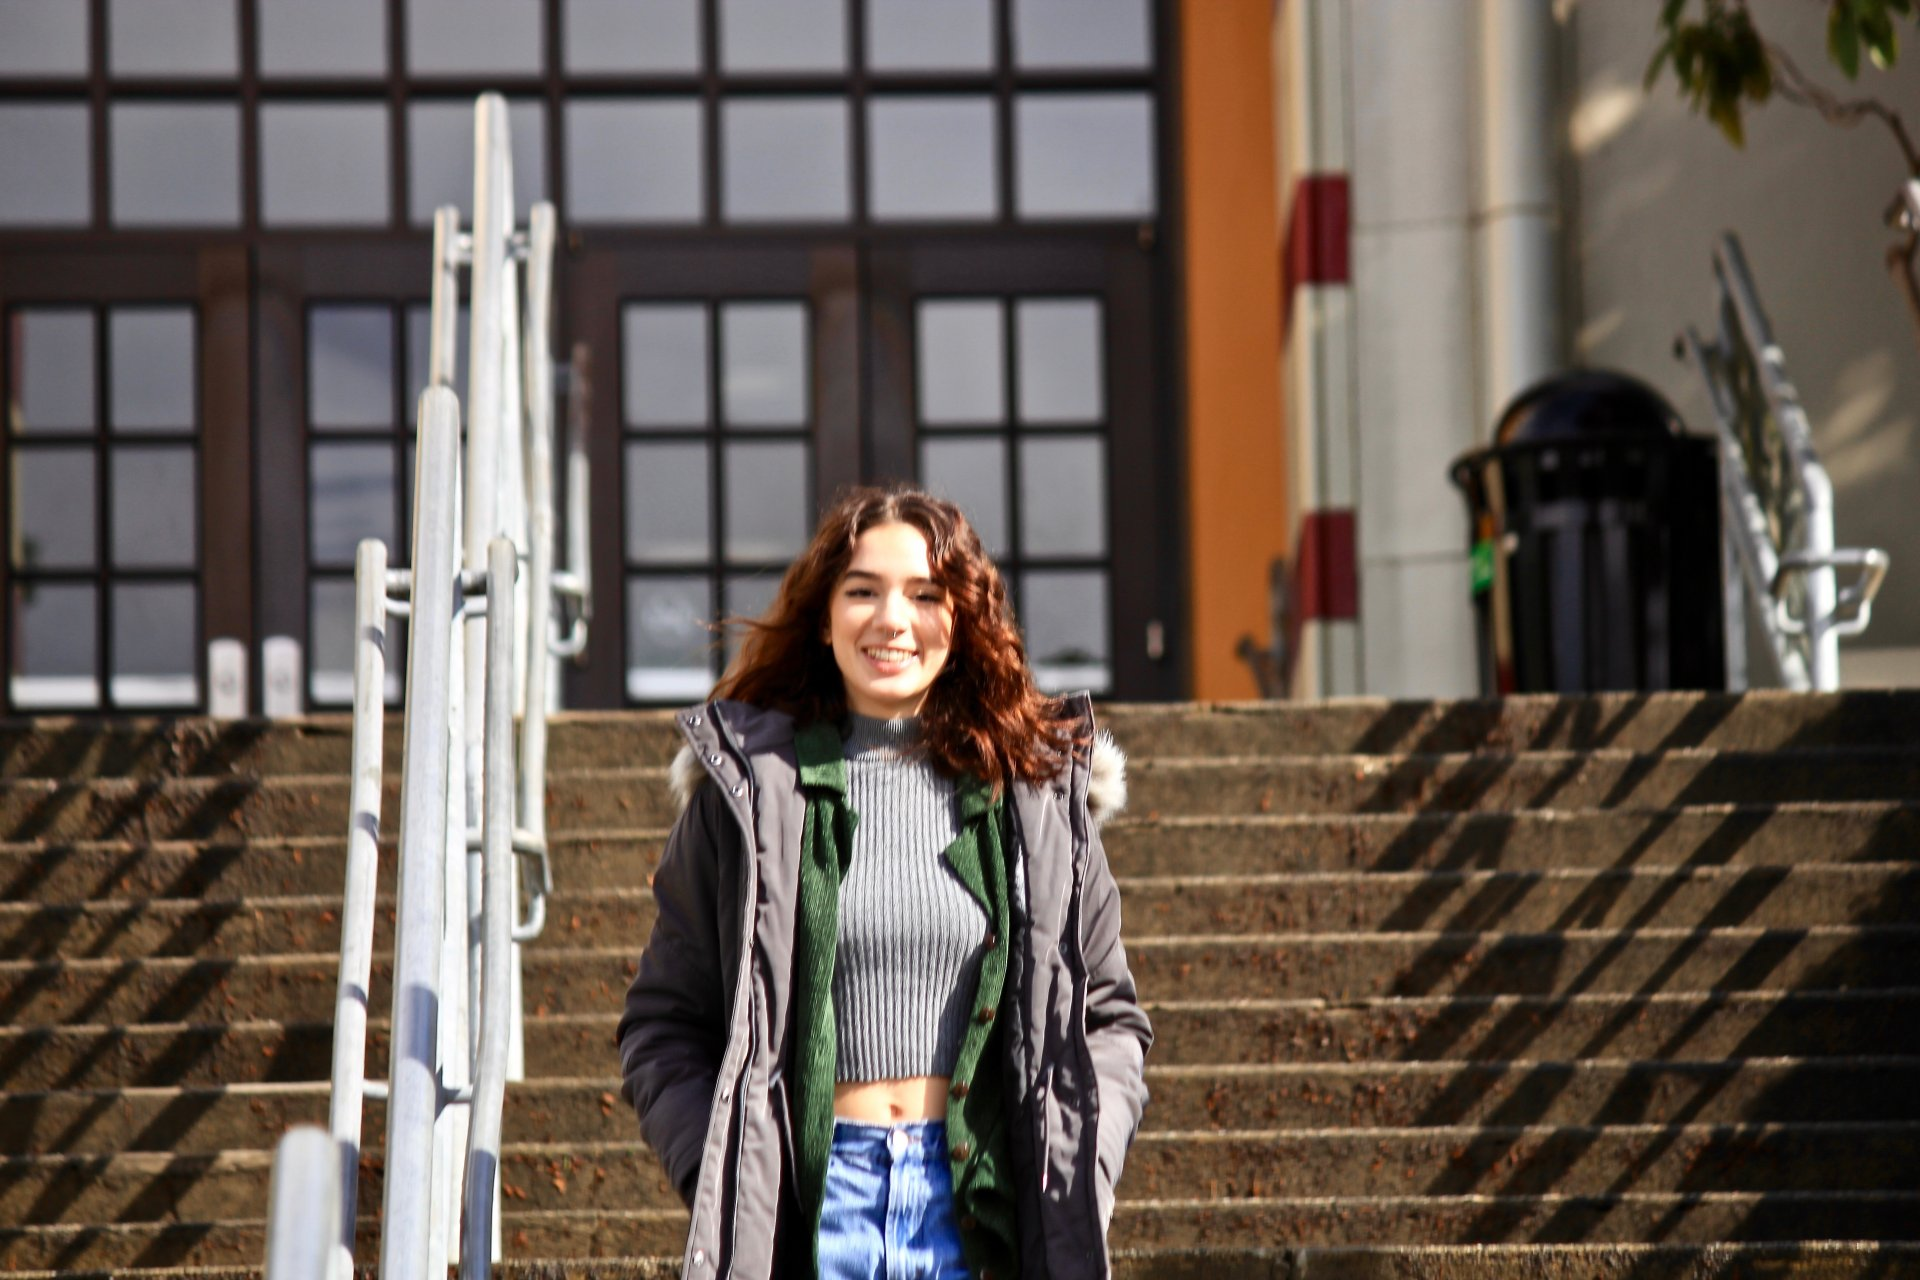 Isabel Duplantier, a freshman journalism major, walks down the steps in front of Founder's Hall on Feb. 15.  | Photo by Freddy Brewster